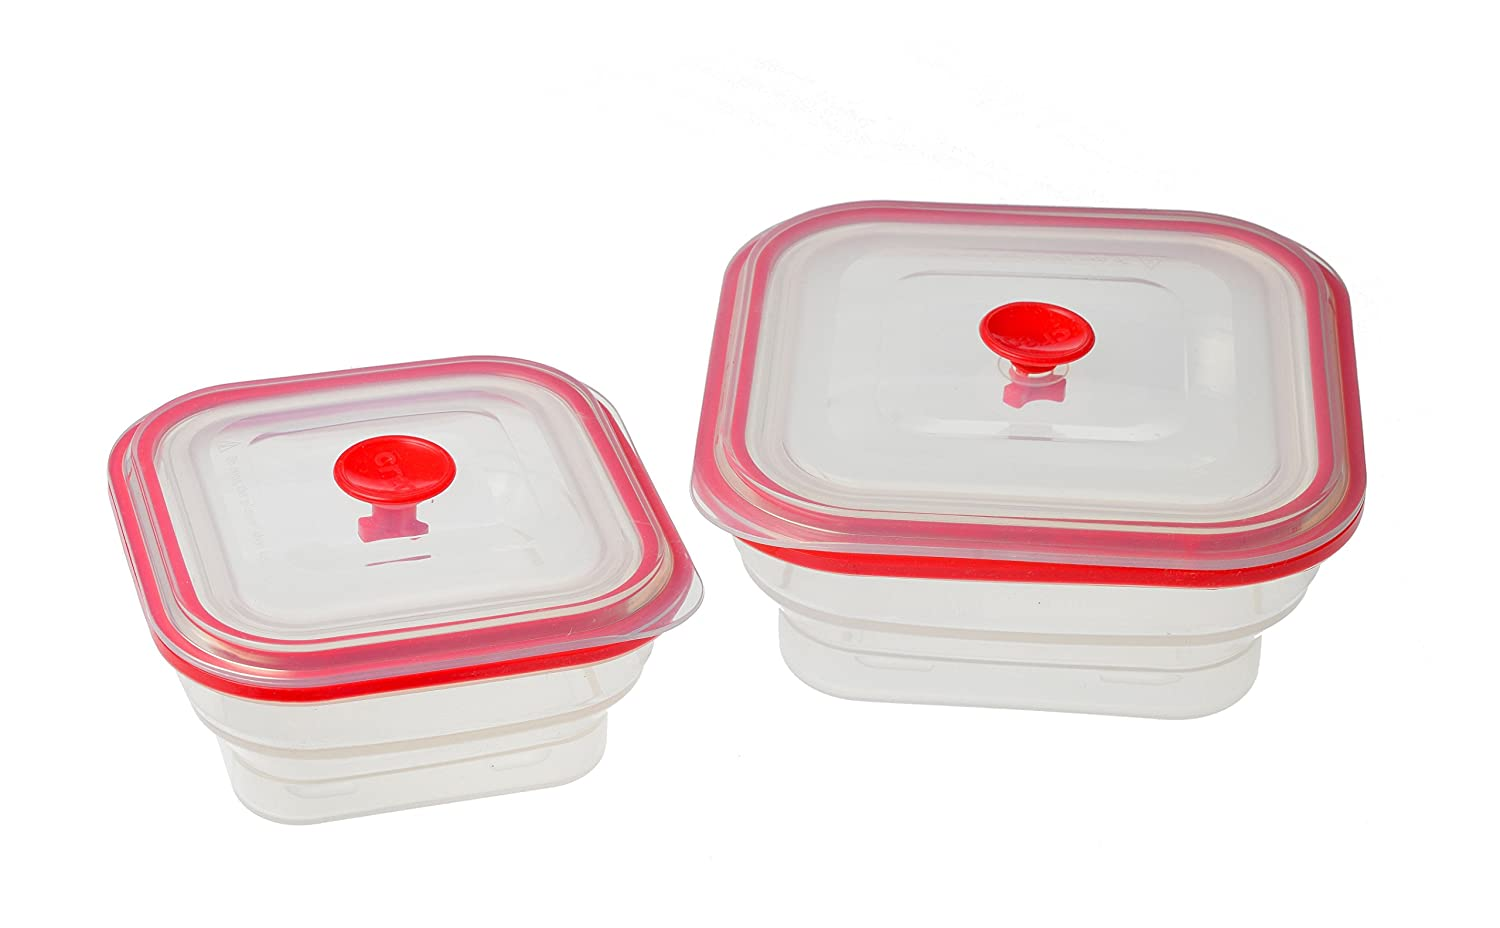 Creo Collapsible Airtight Silicone Food Storage Containers, Freezer to Oven Safe, Set of 2